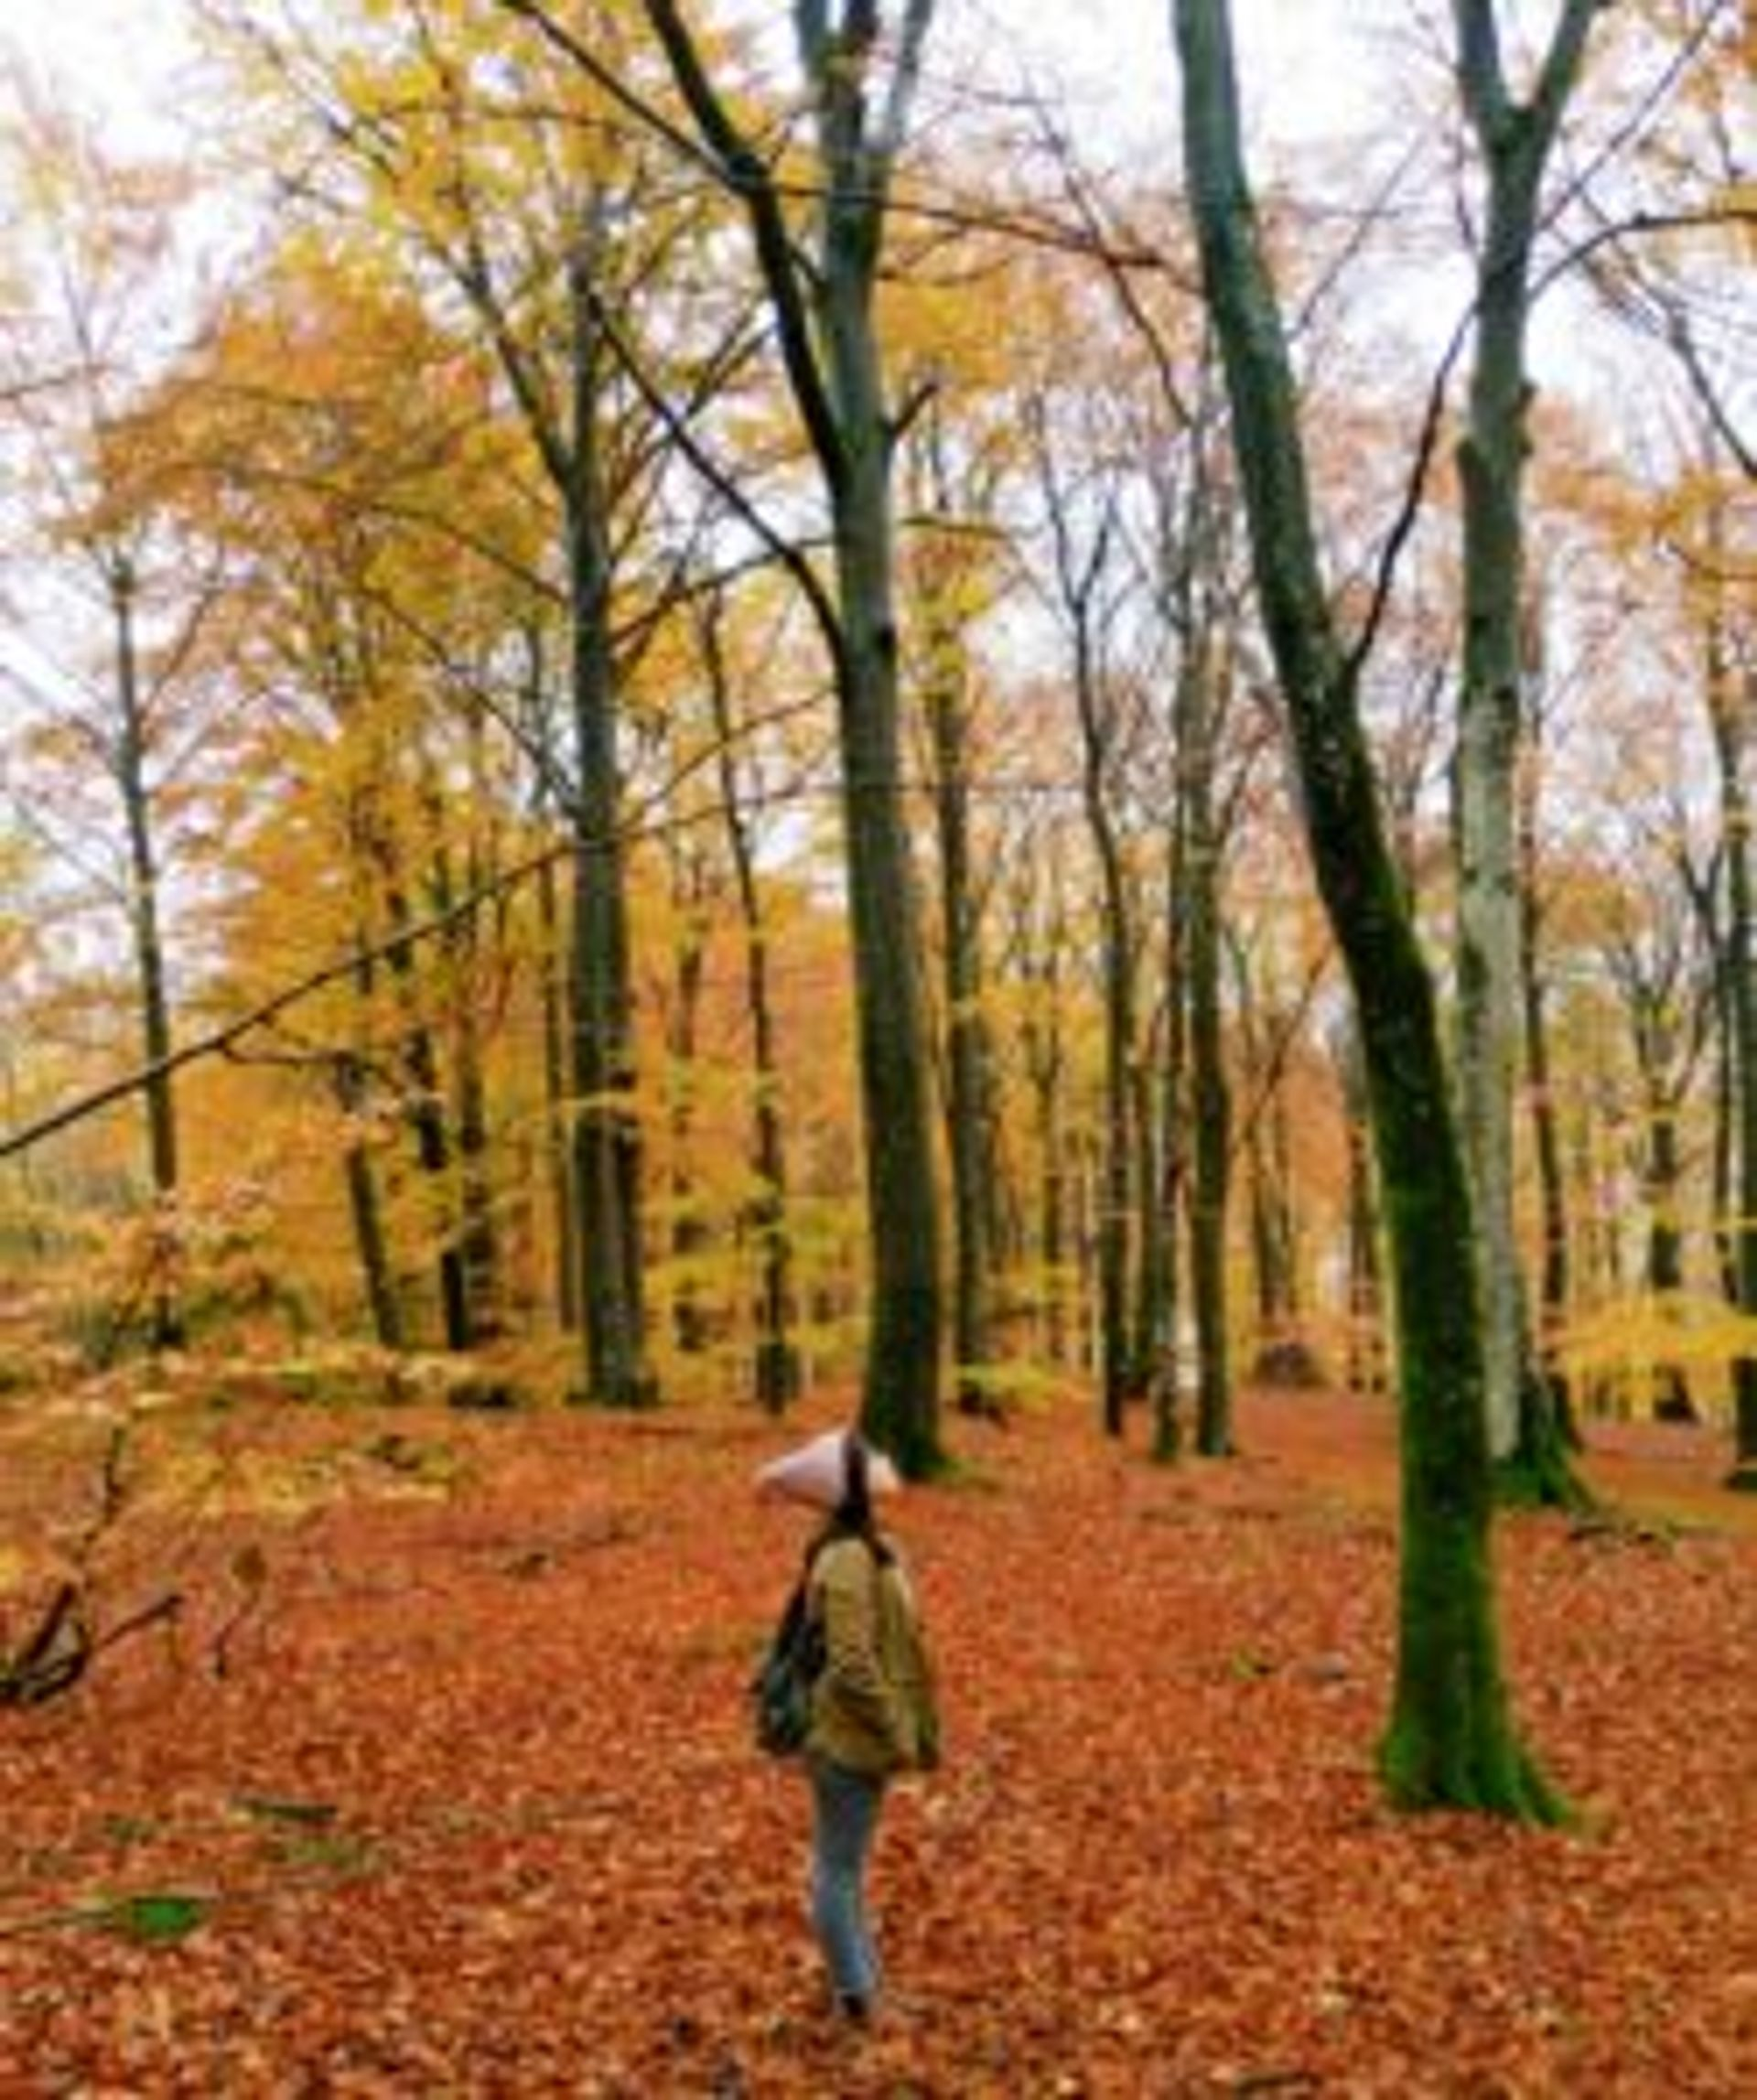 Nguyên standing in the middle of the forrest. The ground is covered by fallen orange and brown leaves.